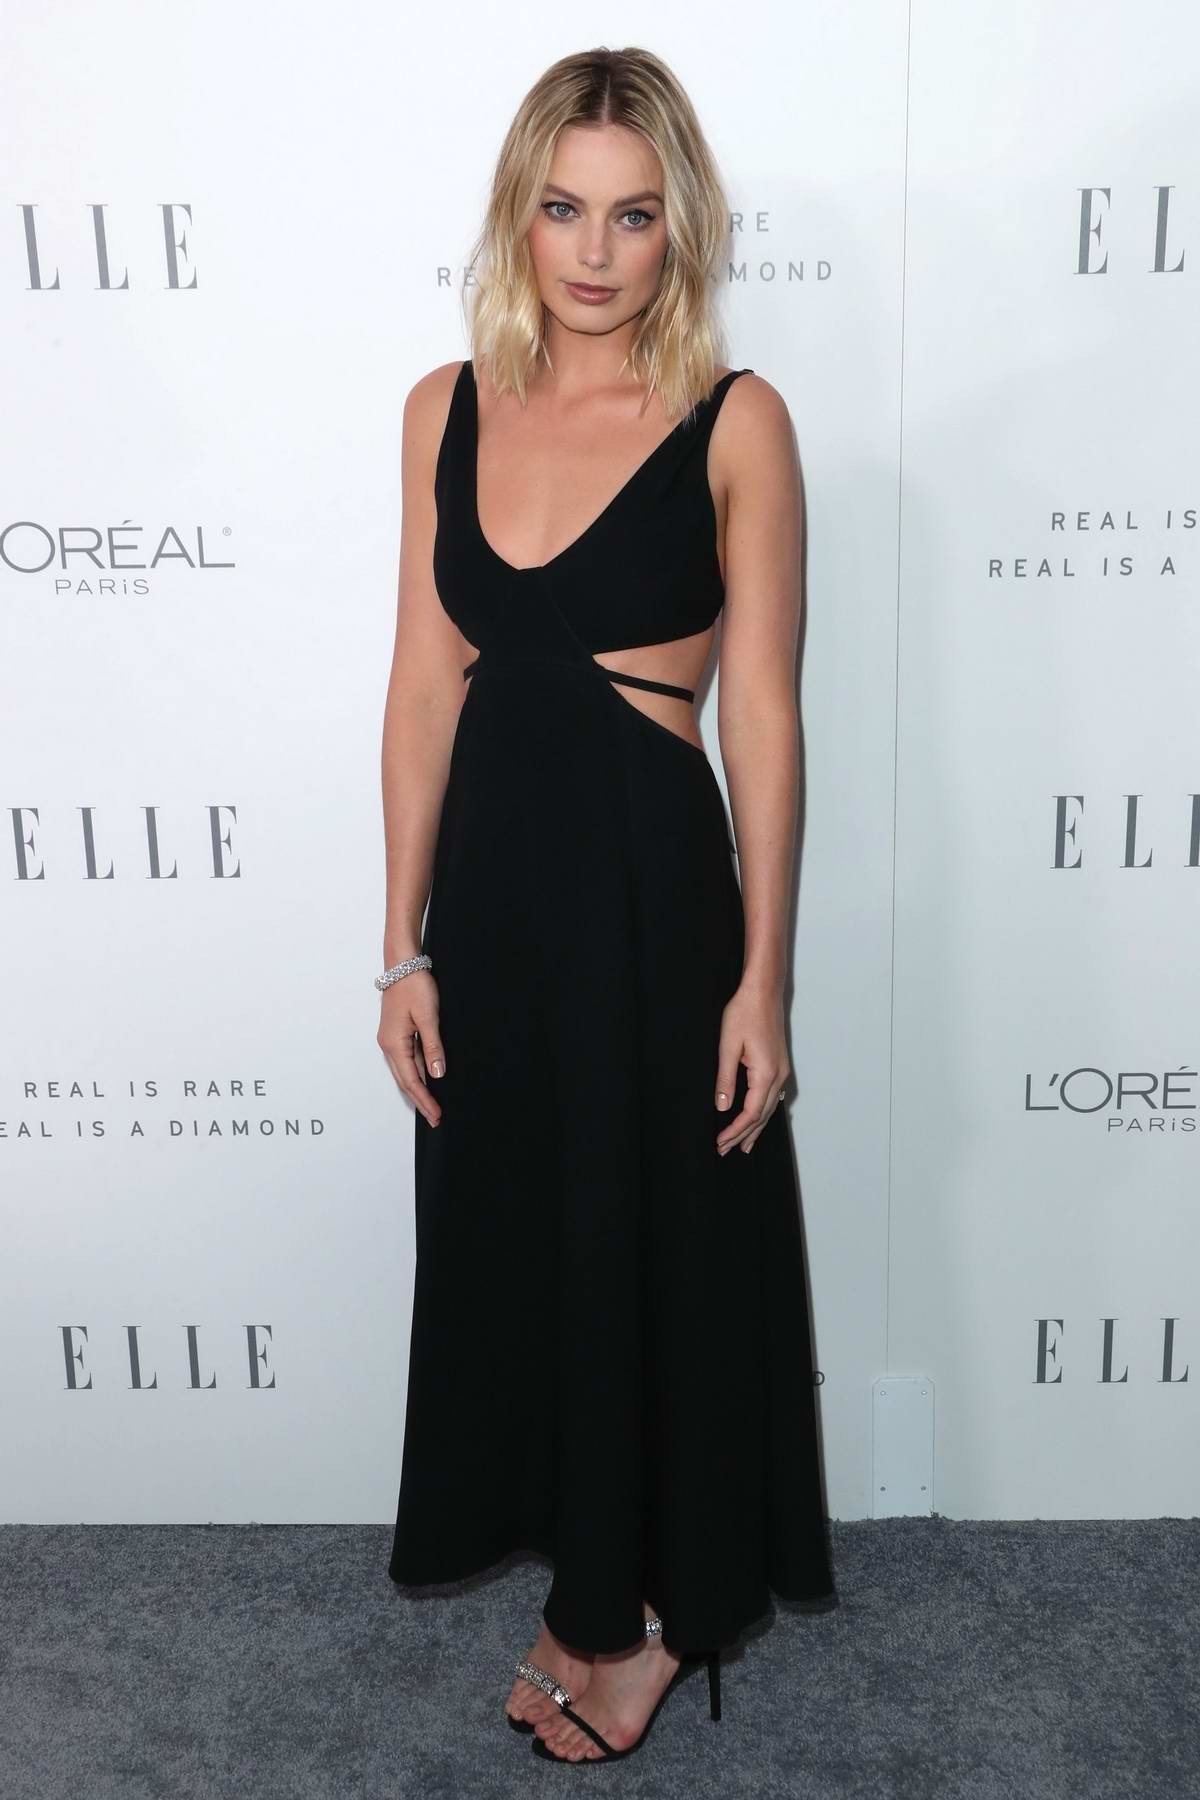 Margot Robbie at the Elle's 24th Annual Women in Hollywood Celebration in Los Angeles